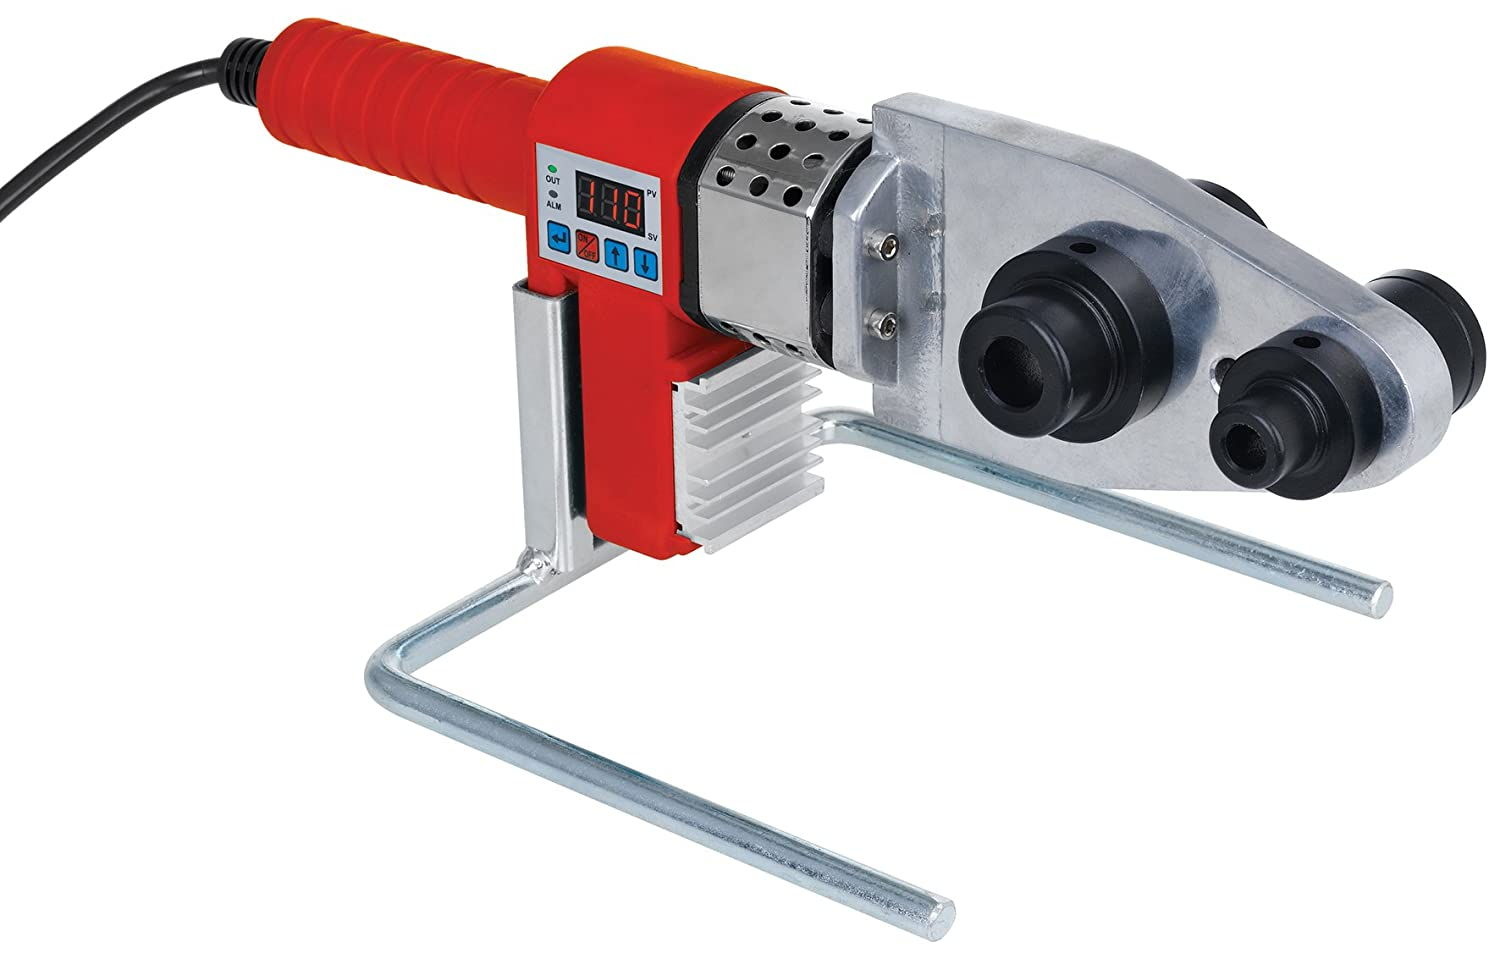 ROTHENBERGER 1500000447 - Socket welder eco 20, 25 y 32 mm: Amazon.es: Industria, empresas y ciencia